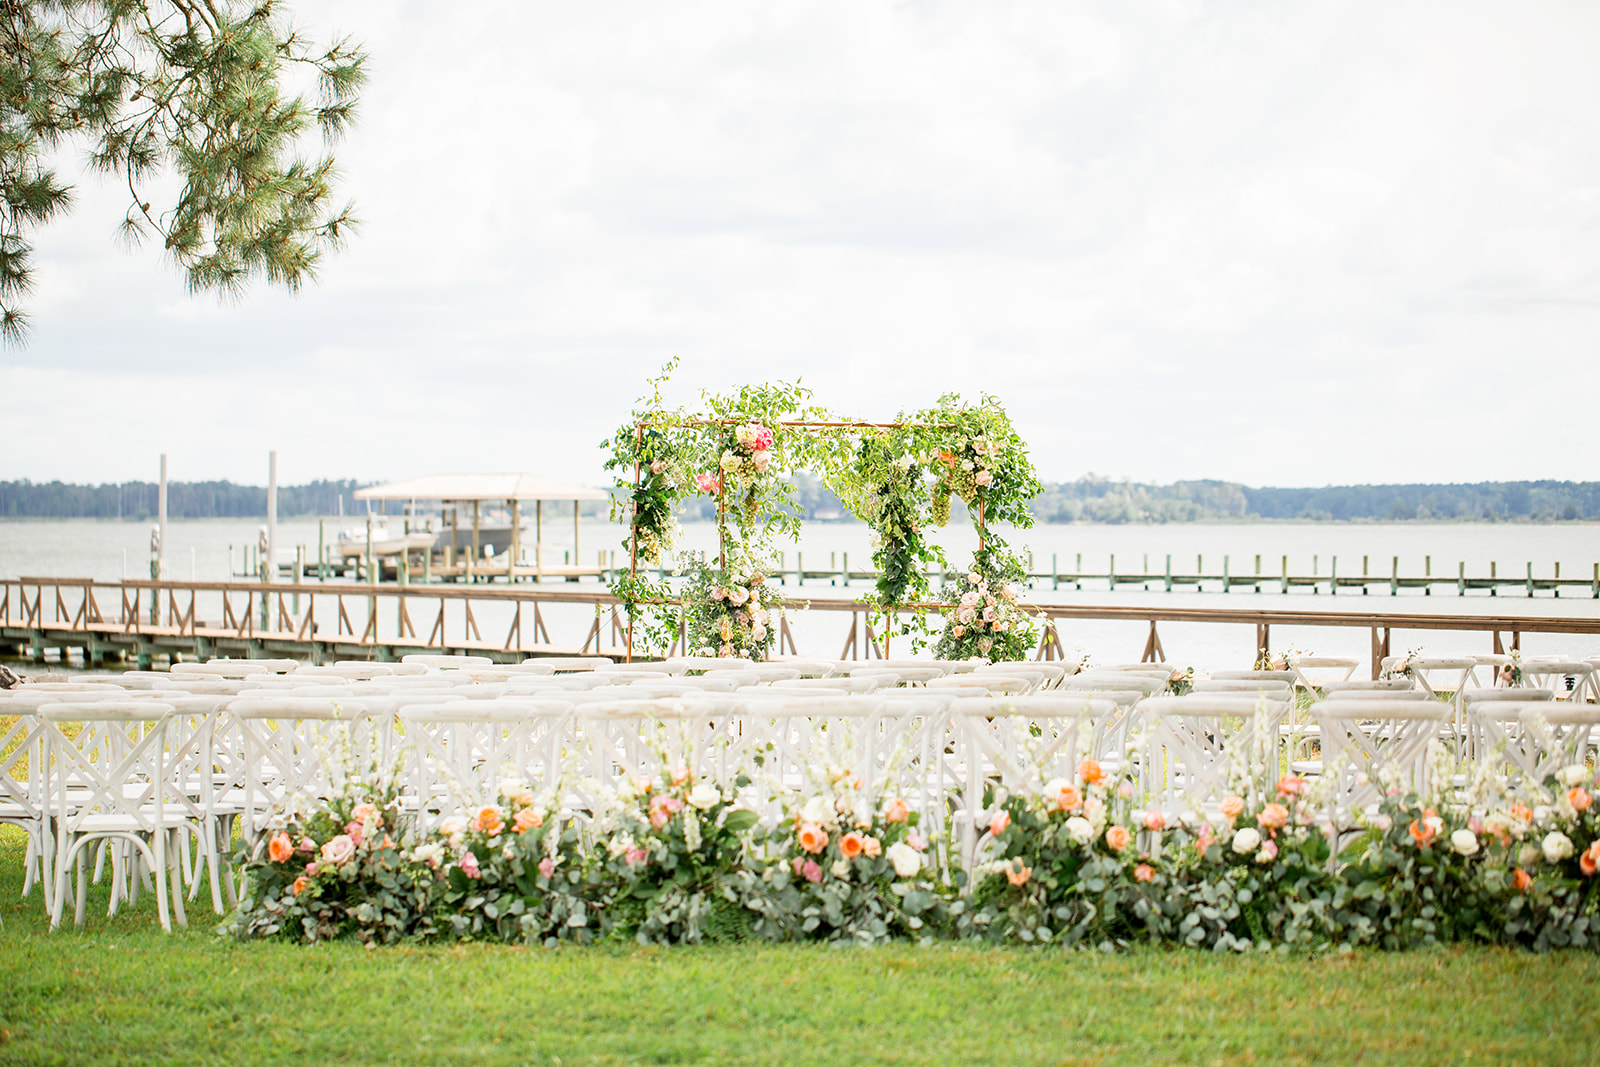 Mac  Kristens Colorful Wedding on the River  - Image Property of www.j-dphoto.com